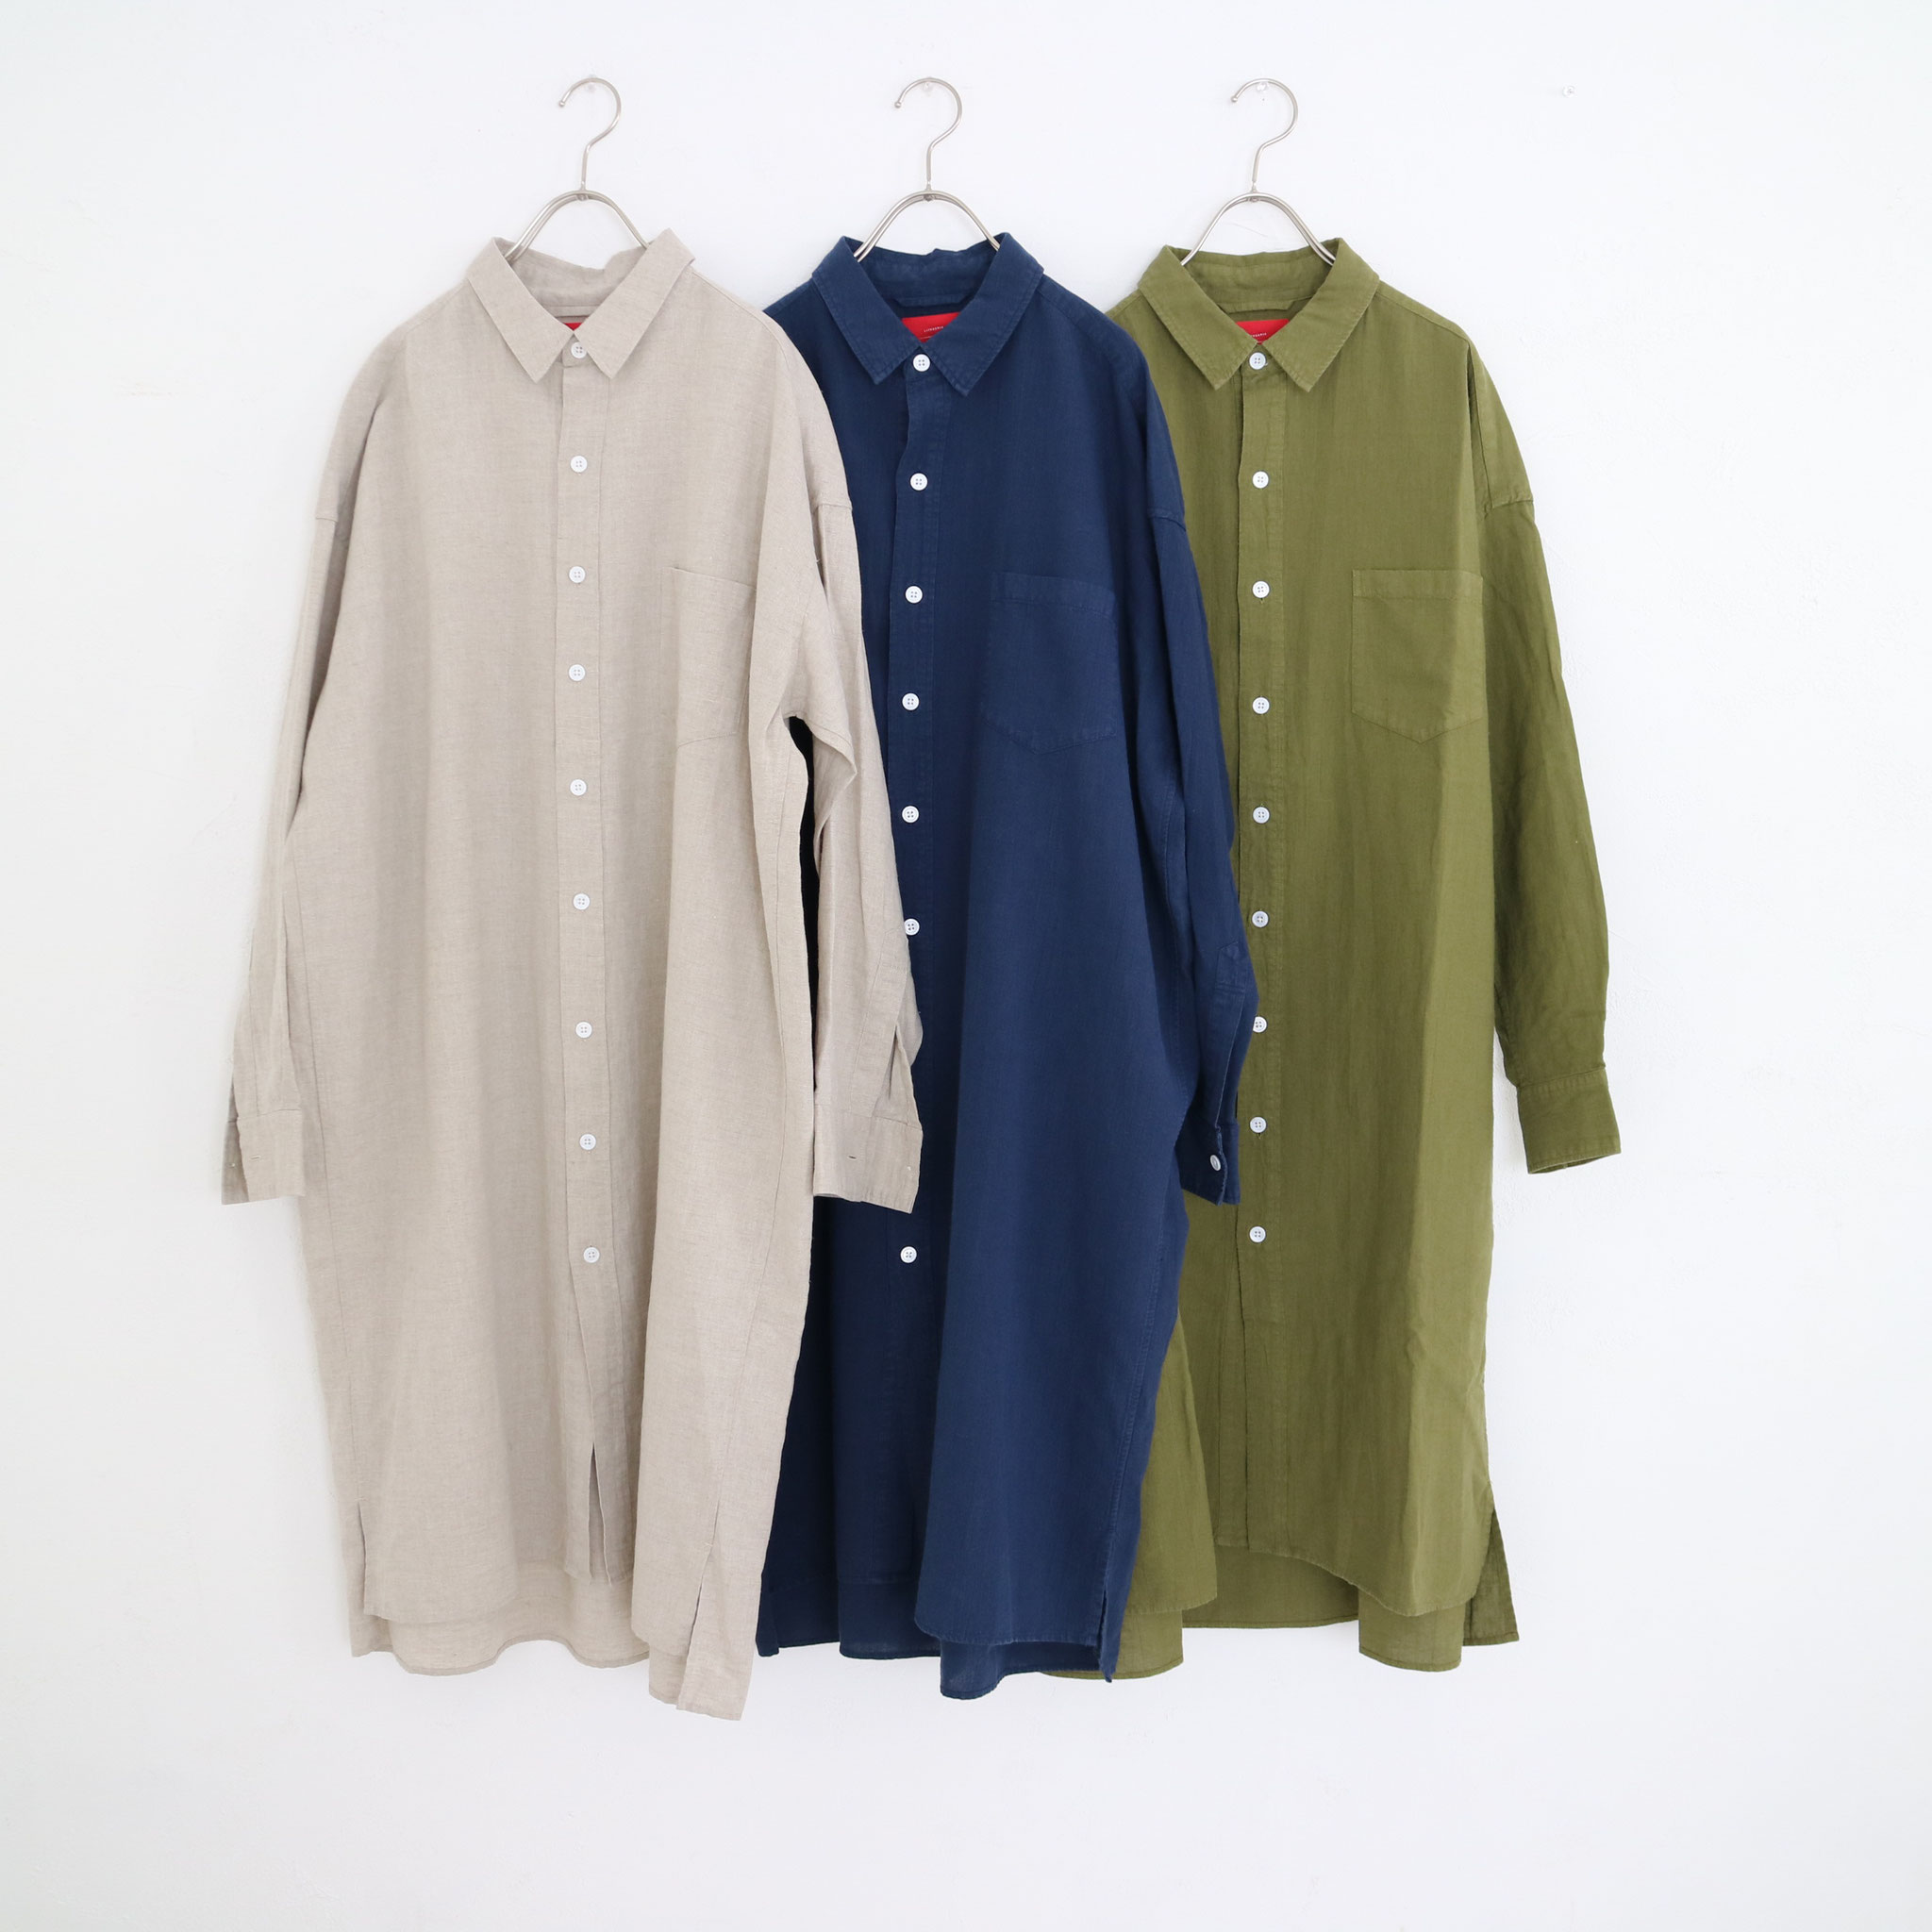 Natural→ Navy→ Martini olive